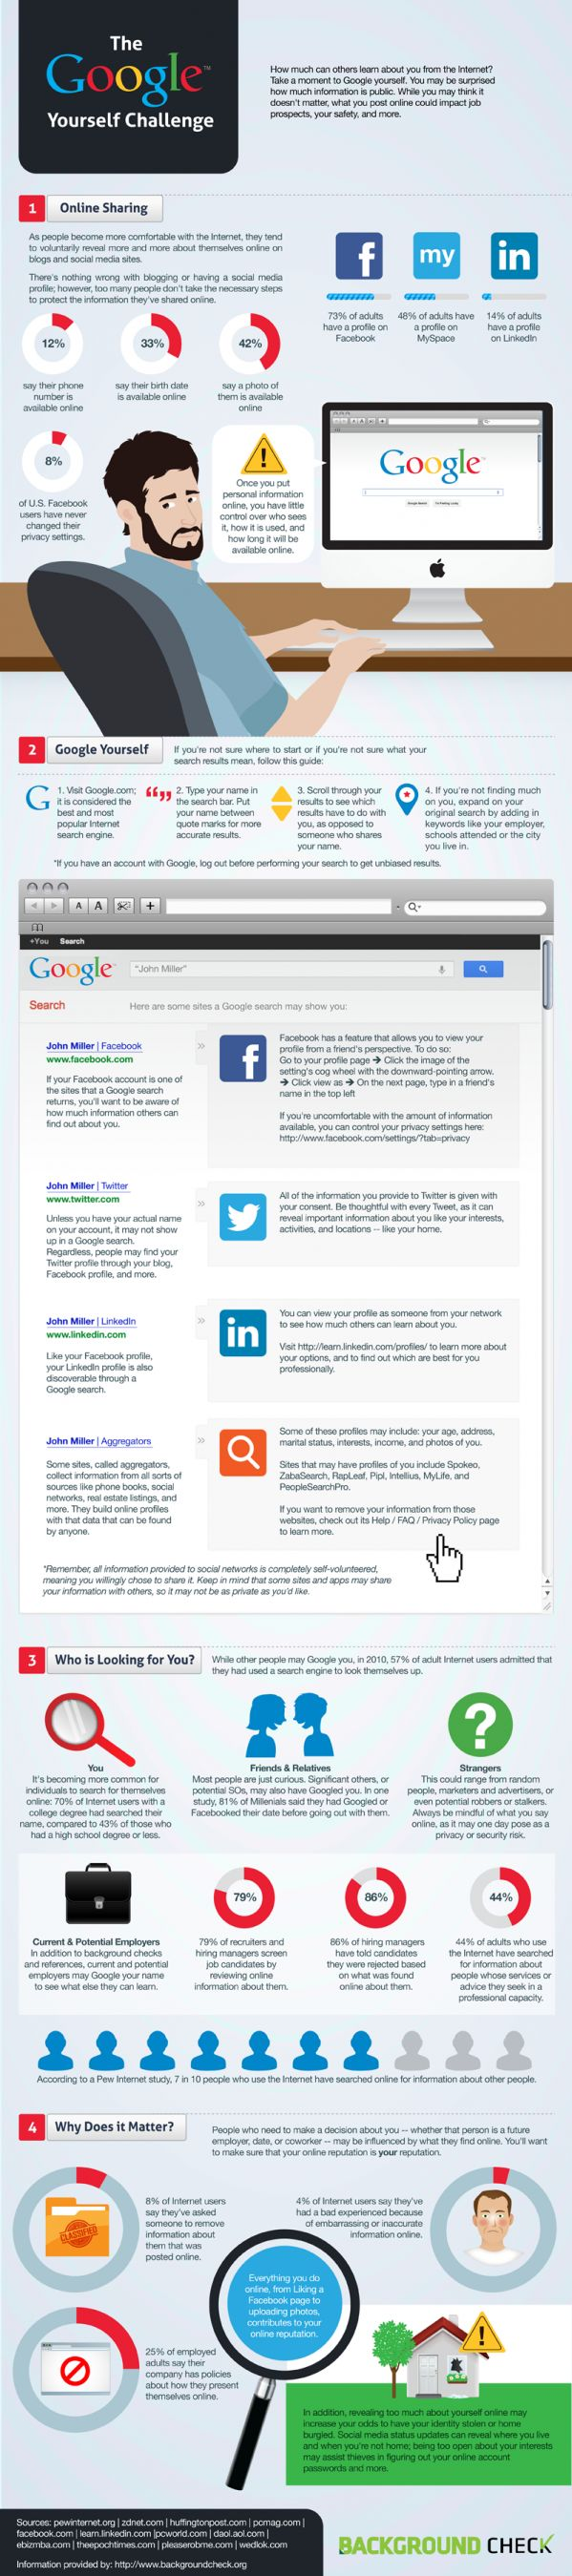 Google Yourself Challenge - Infographic. It is extremely important to know what is said about you on the internet (especially if you are searching for a job).